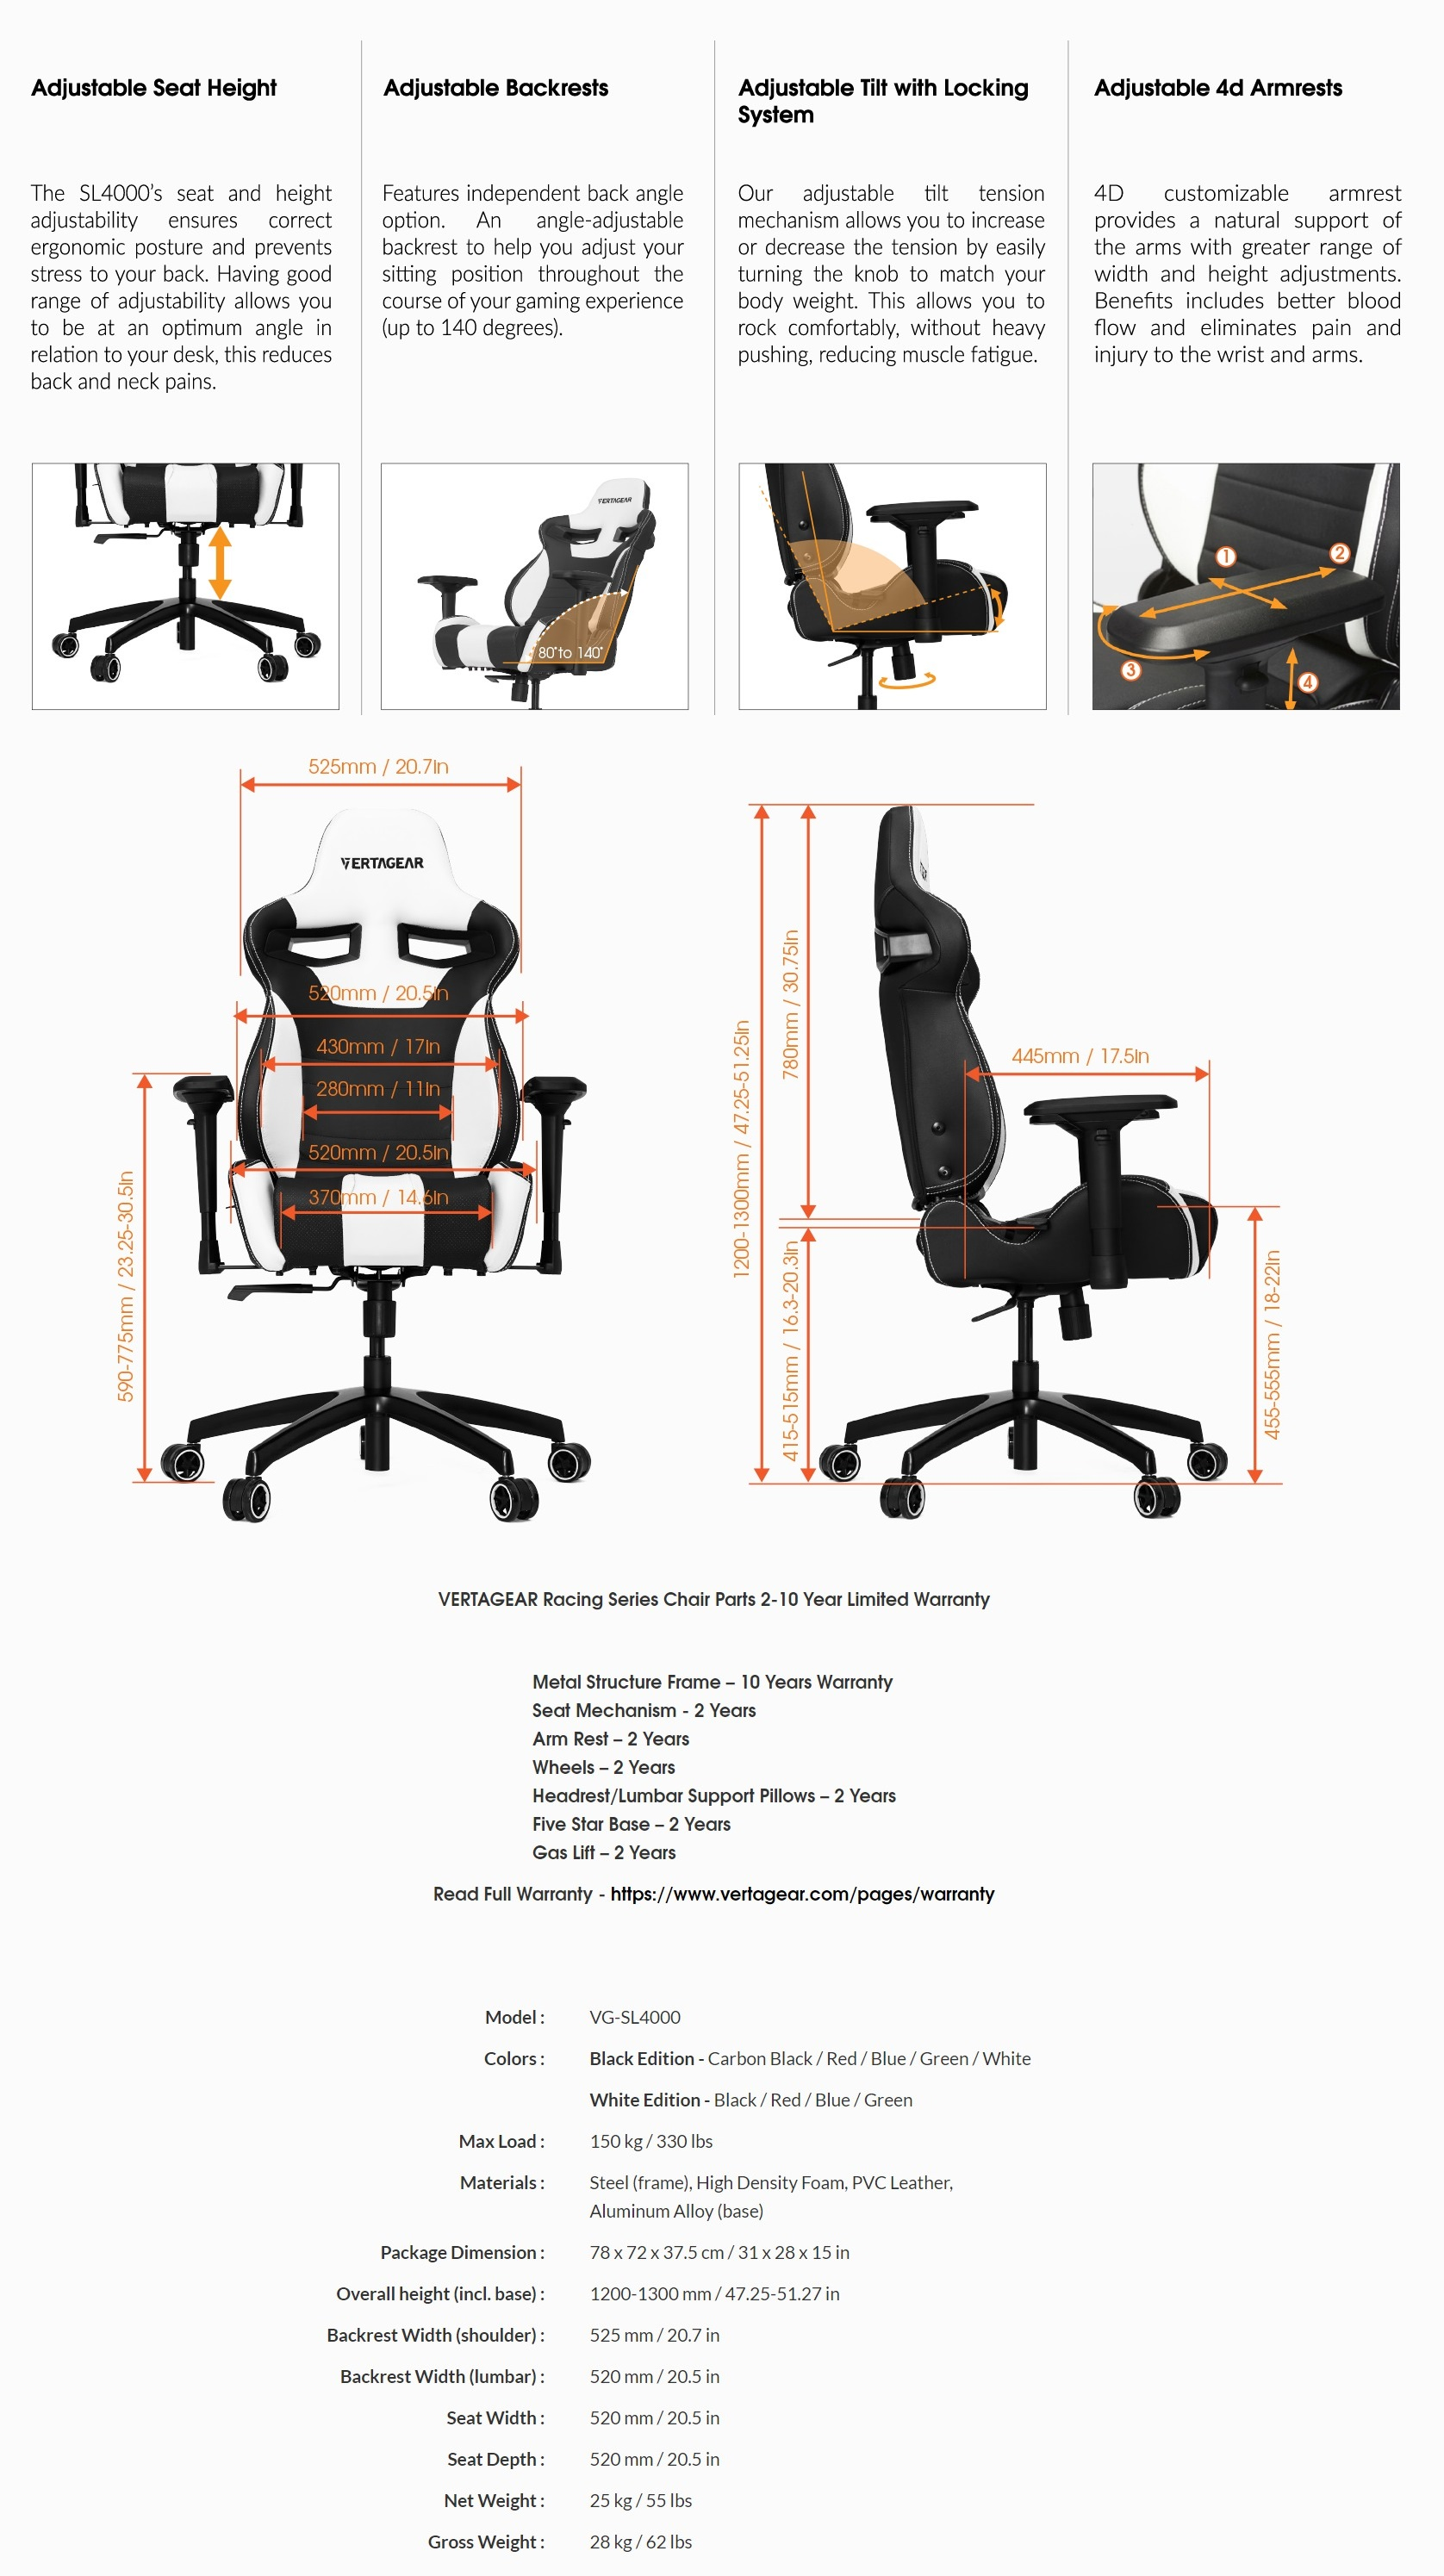 A large marketing image providing additional information about the product Vertagear Racing Series S-Line SL4000 Gaming Chair White/Green Edition - Additional alt info not provided